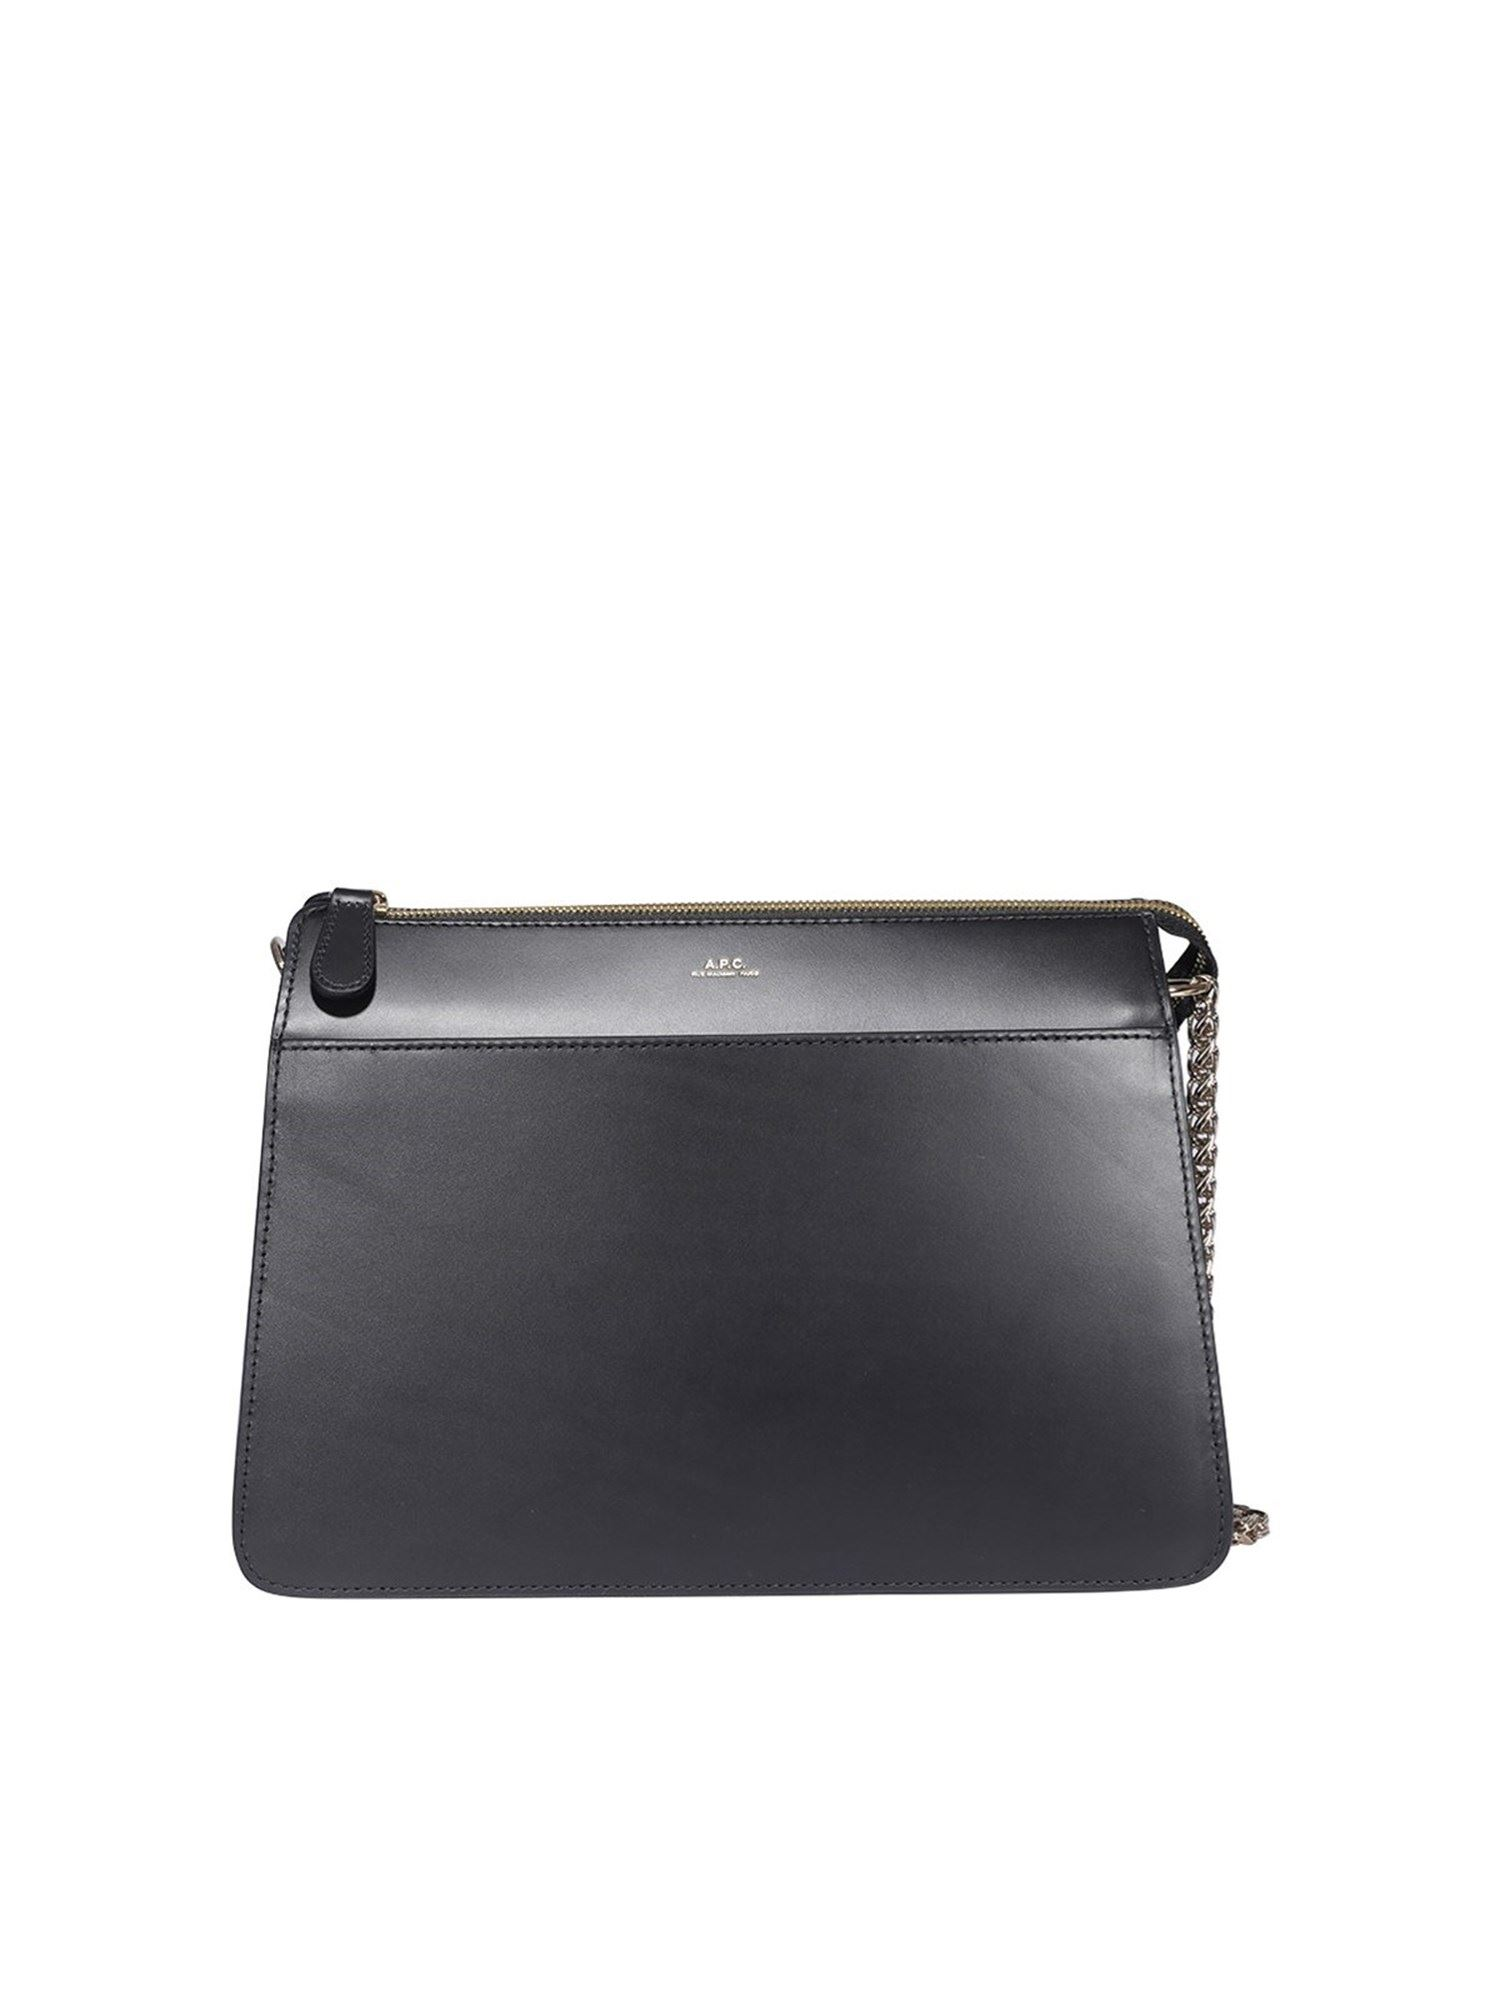 A.p.c. ELLA LARGE CROSS BODY BAG IN BLACK